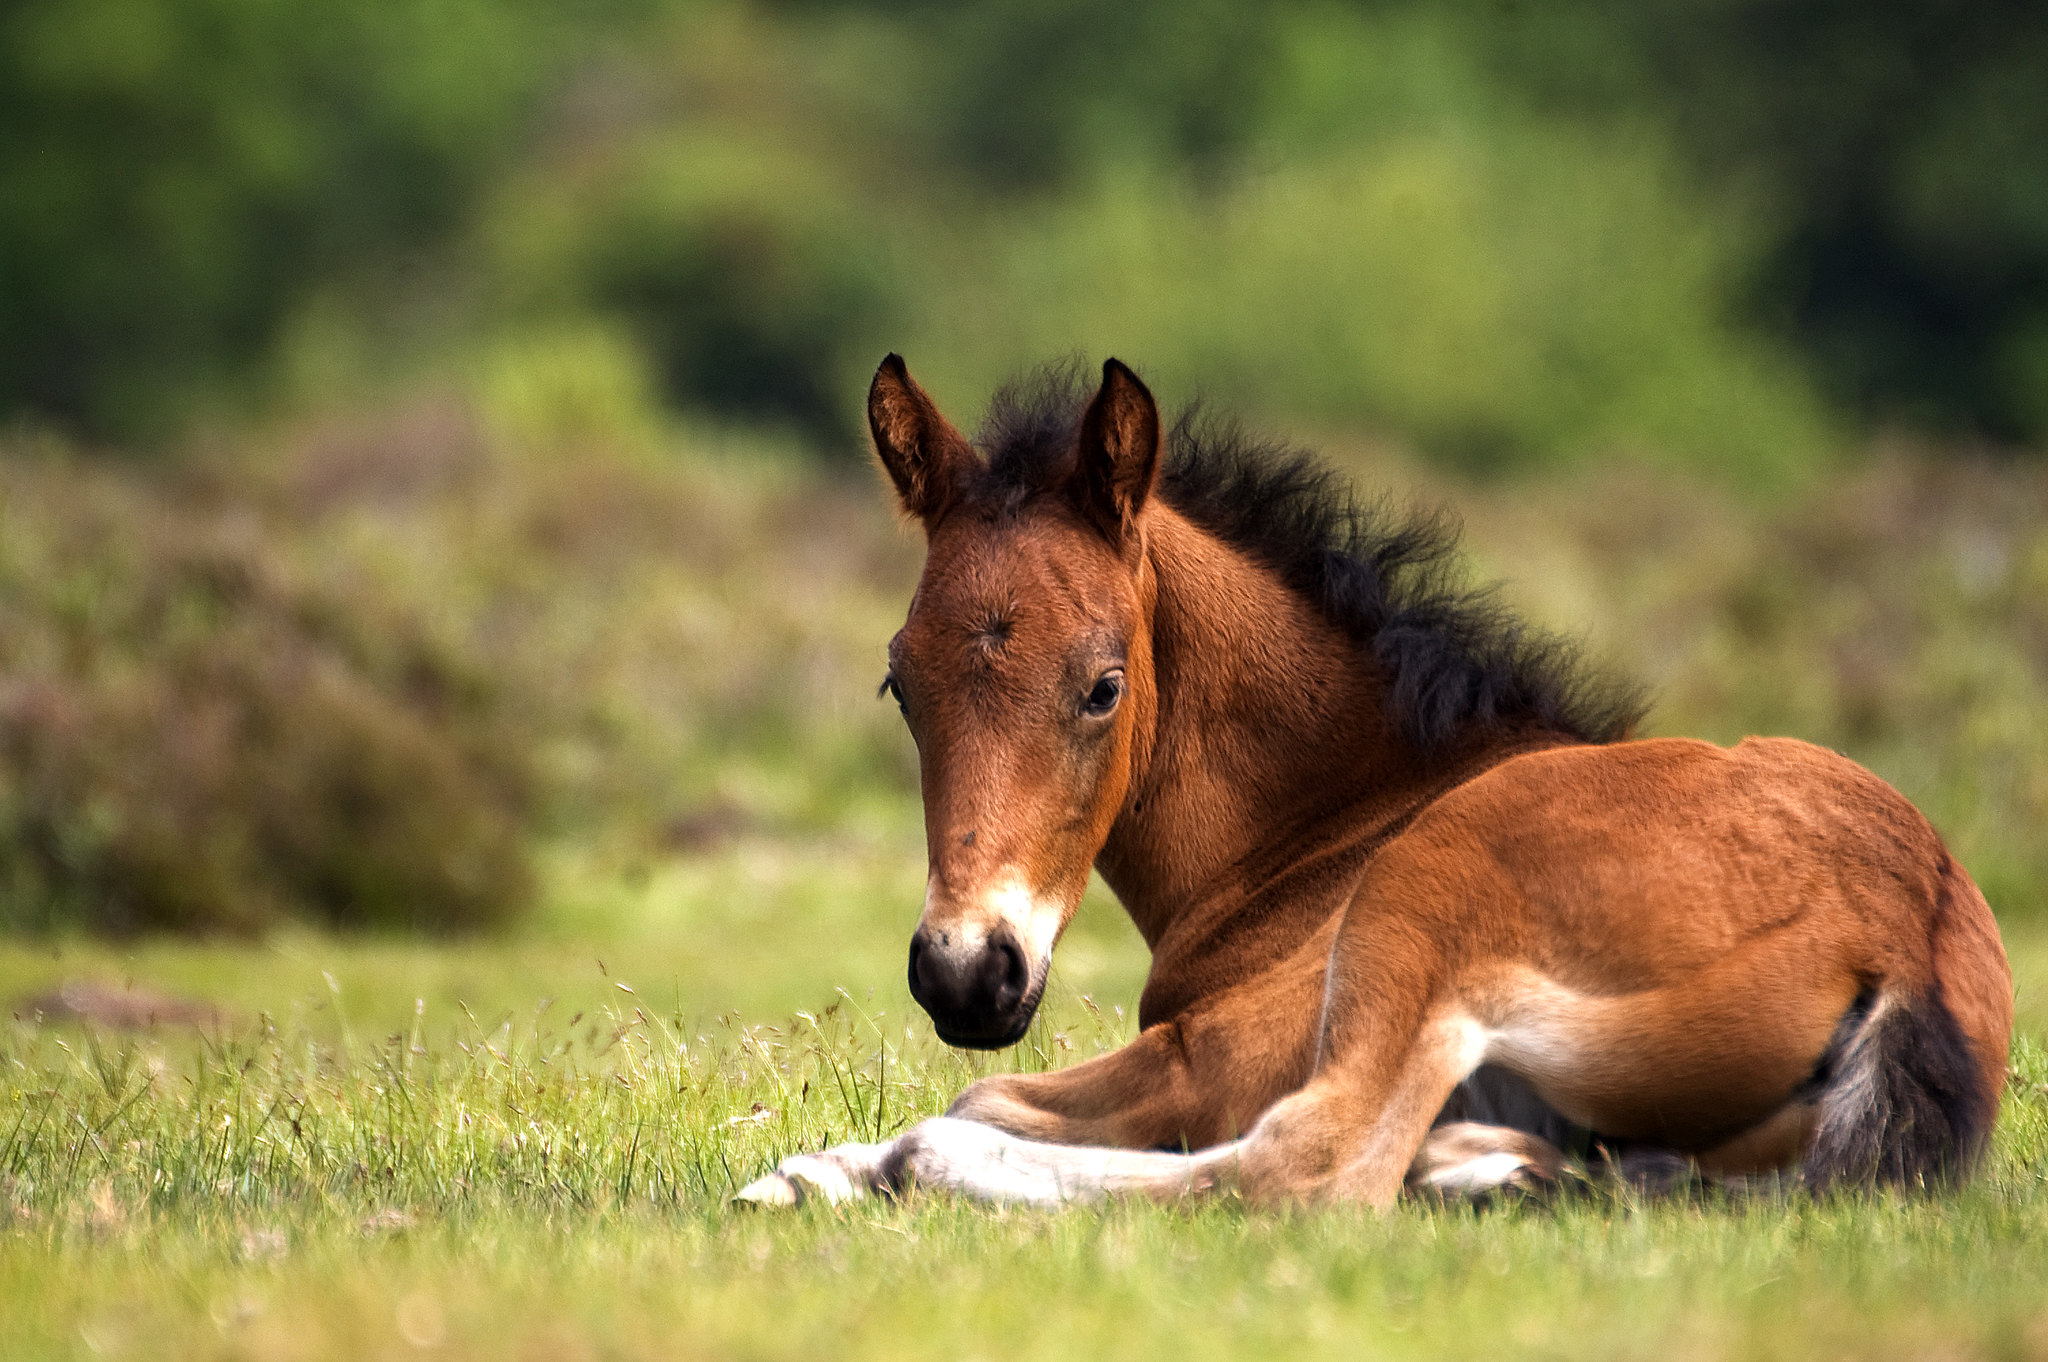 New Forest foal | The New Forest